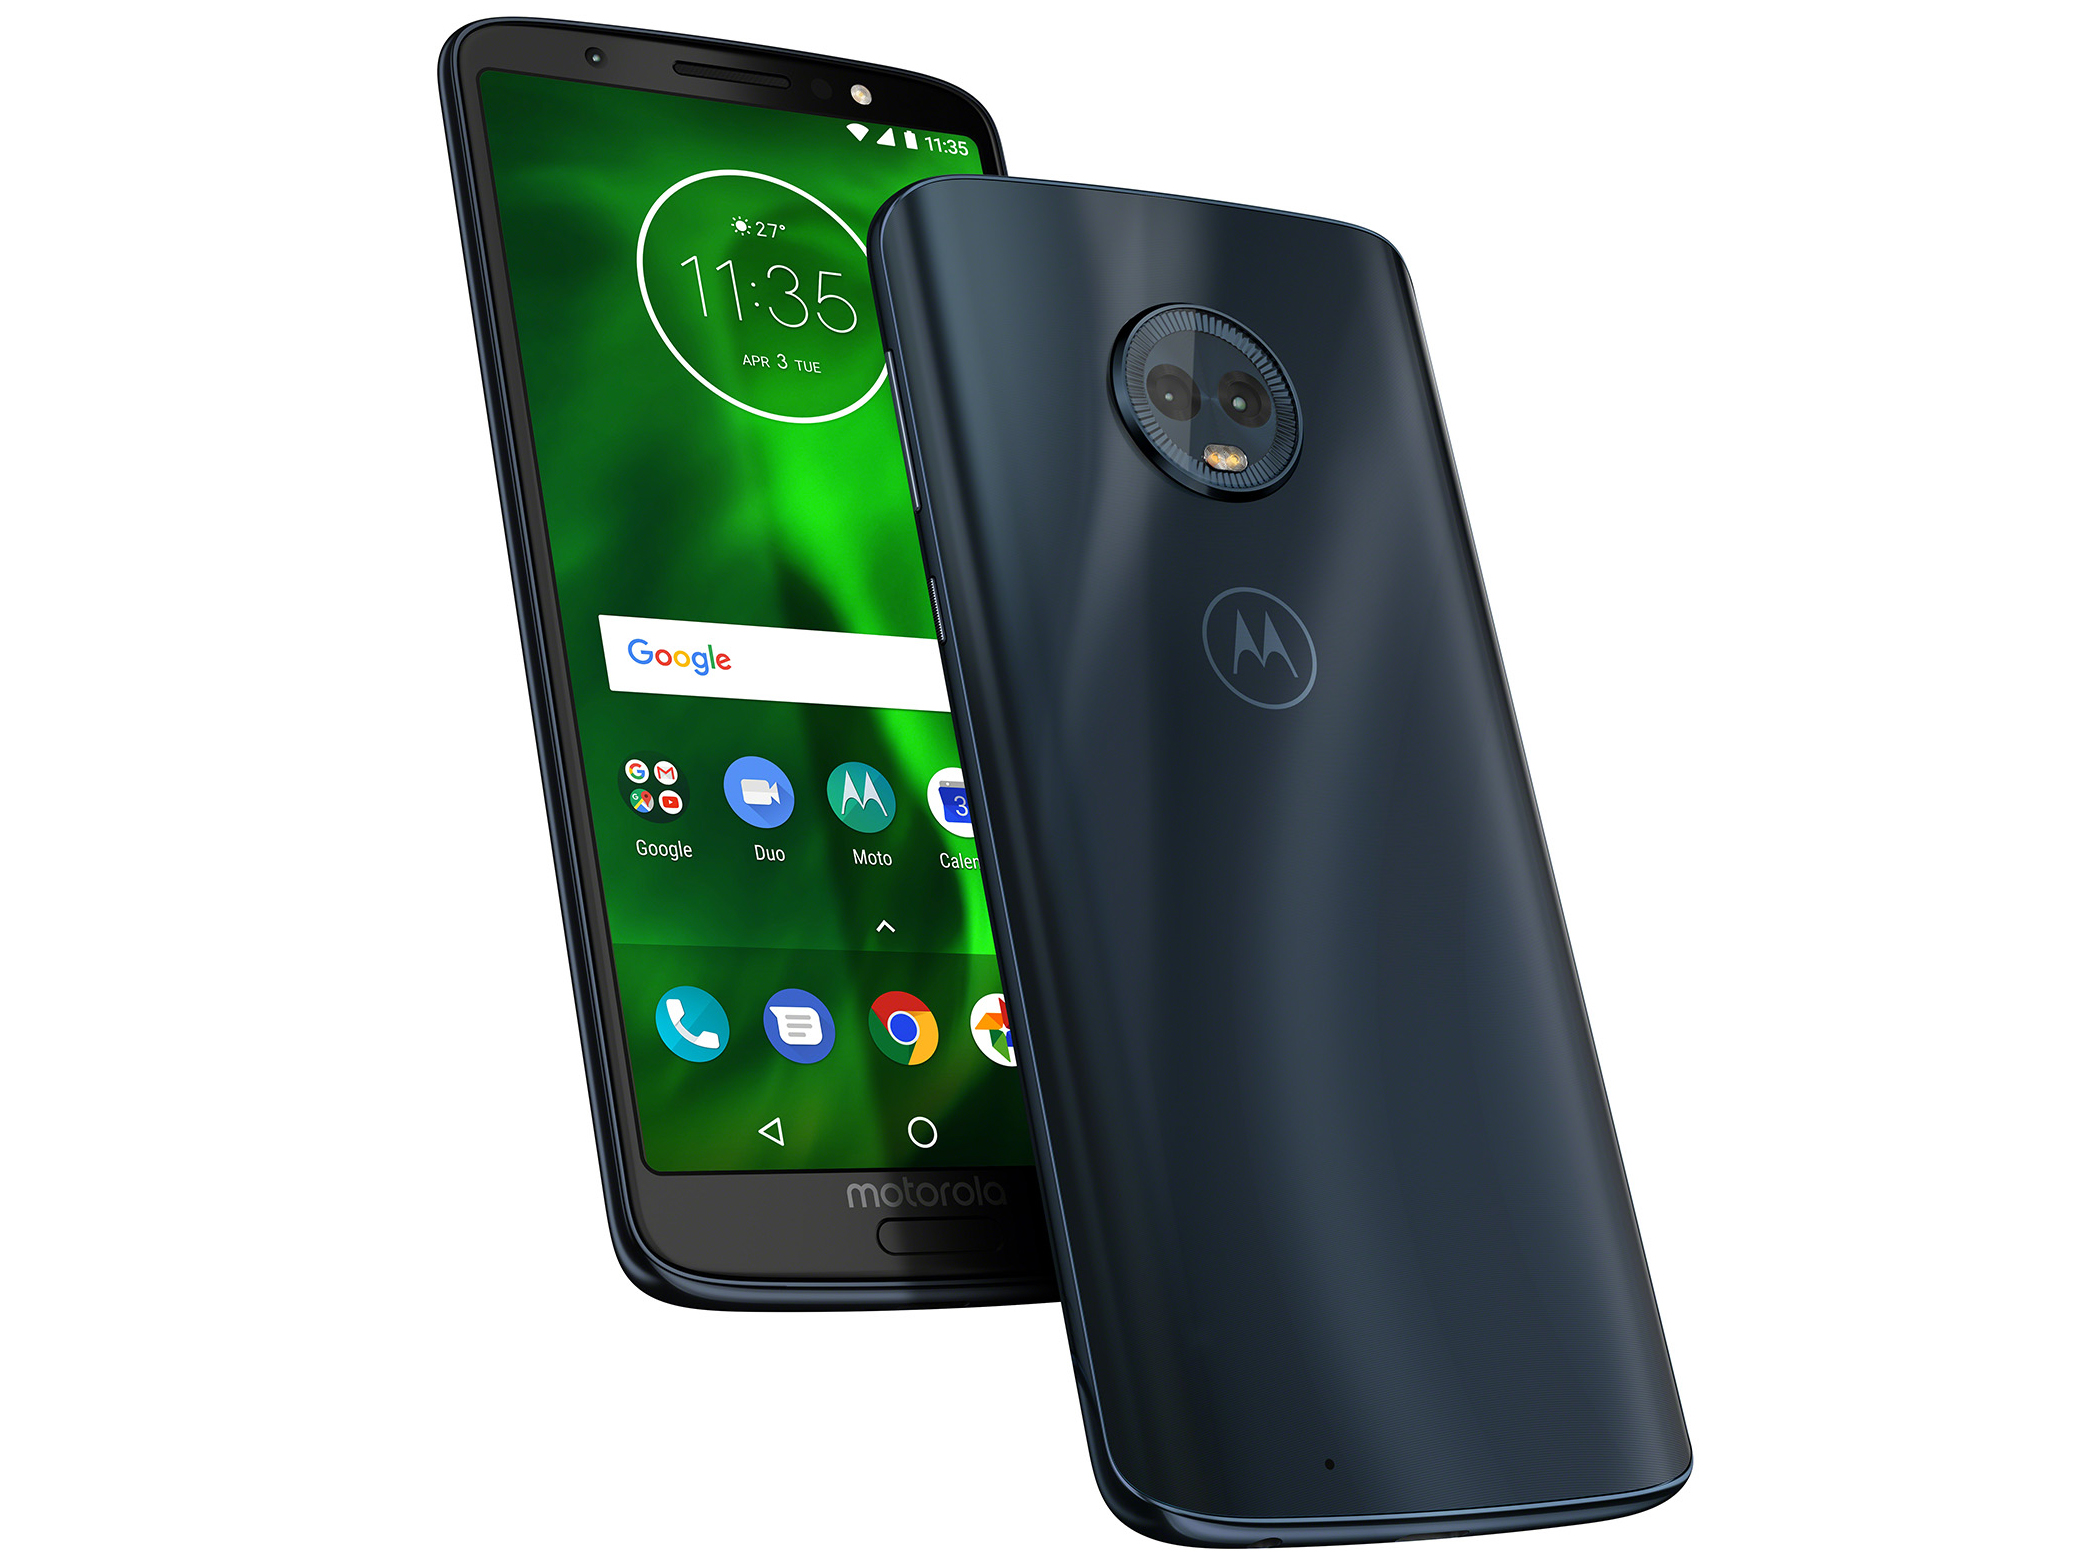 42a32522d1a Motorola Moto G6 Smartphone Review - NotebookCheck.net Reviews